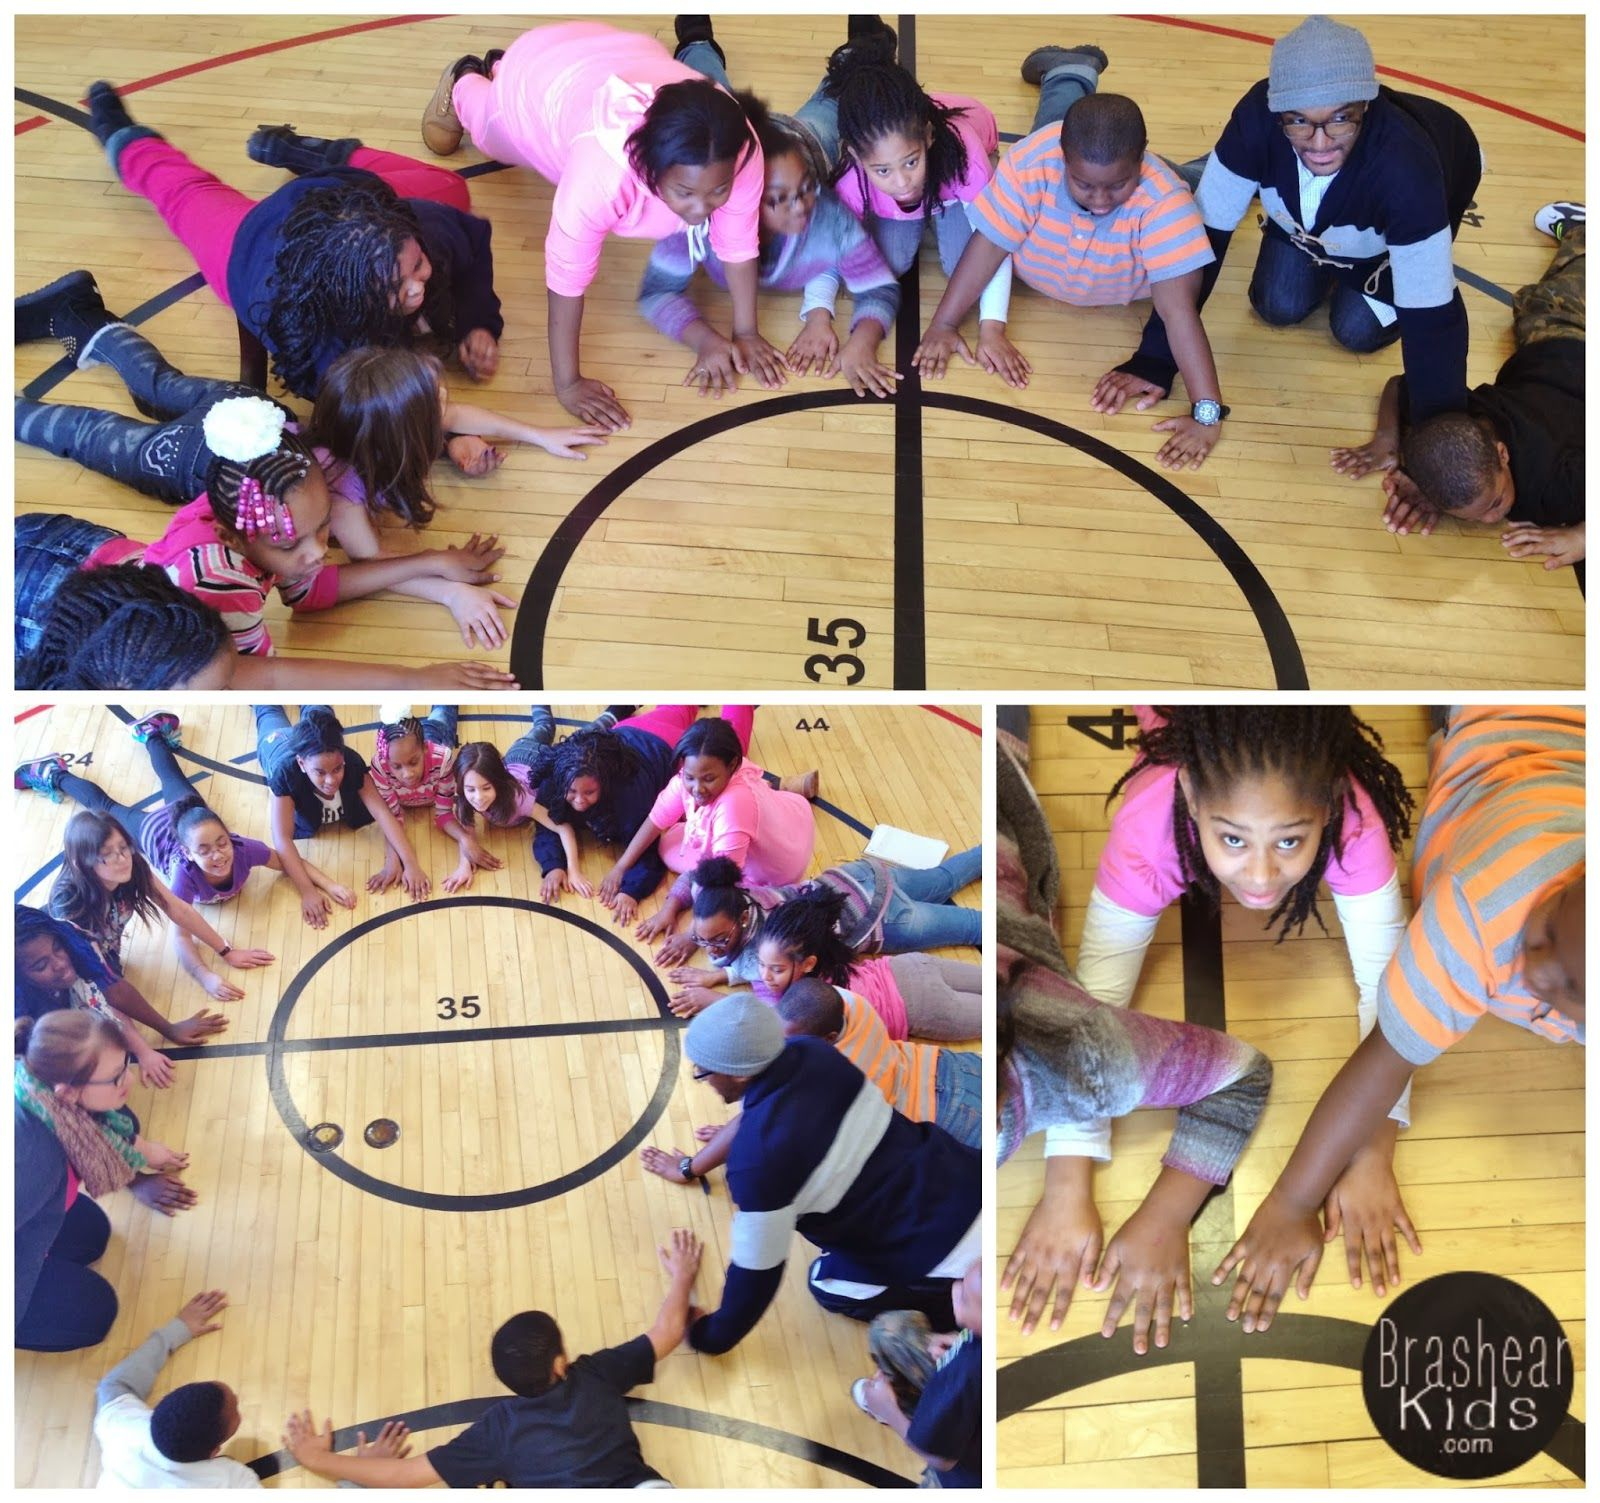 The Hand Game An After School Circle Game a fun game to